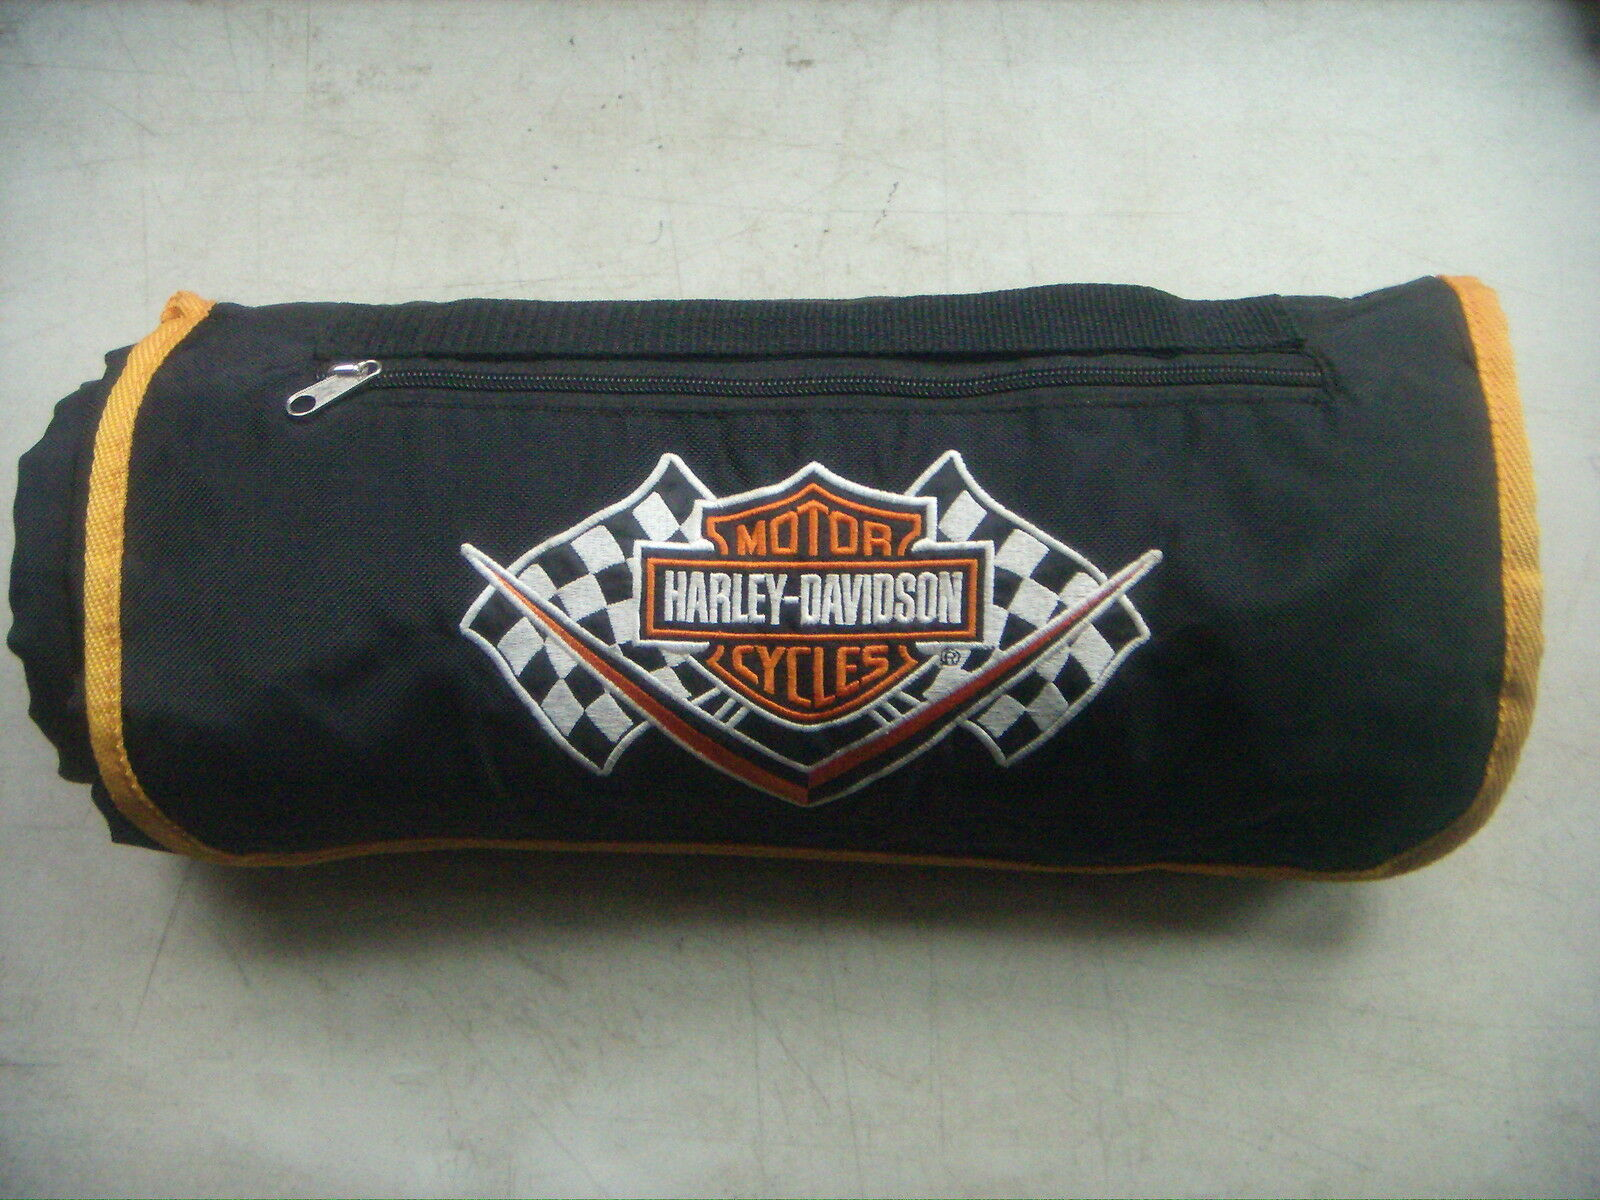 Primary image for Harley Davidson Picnic/Stadium/Beach Travel Blanket Fleece & Nylon. W/Eyelets